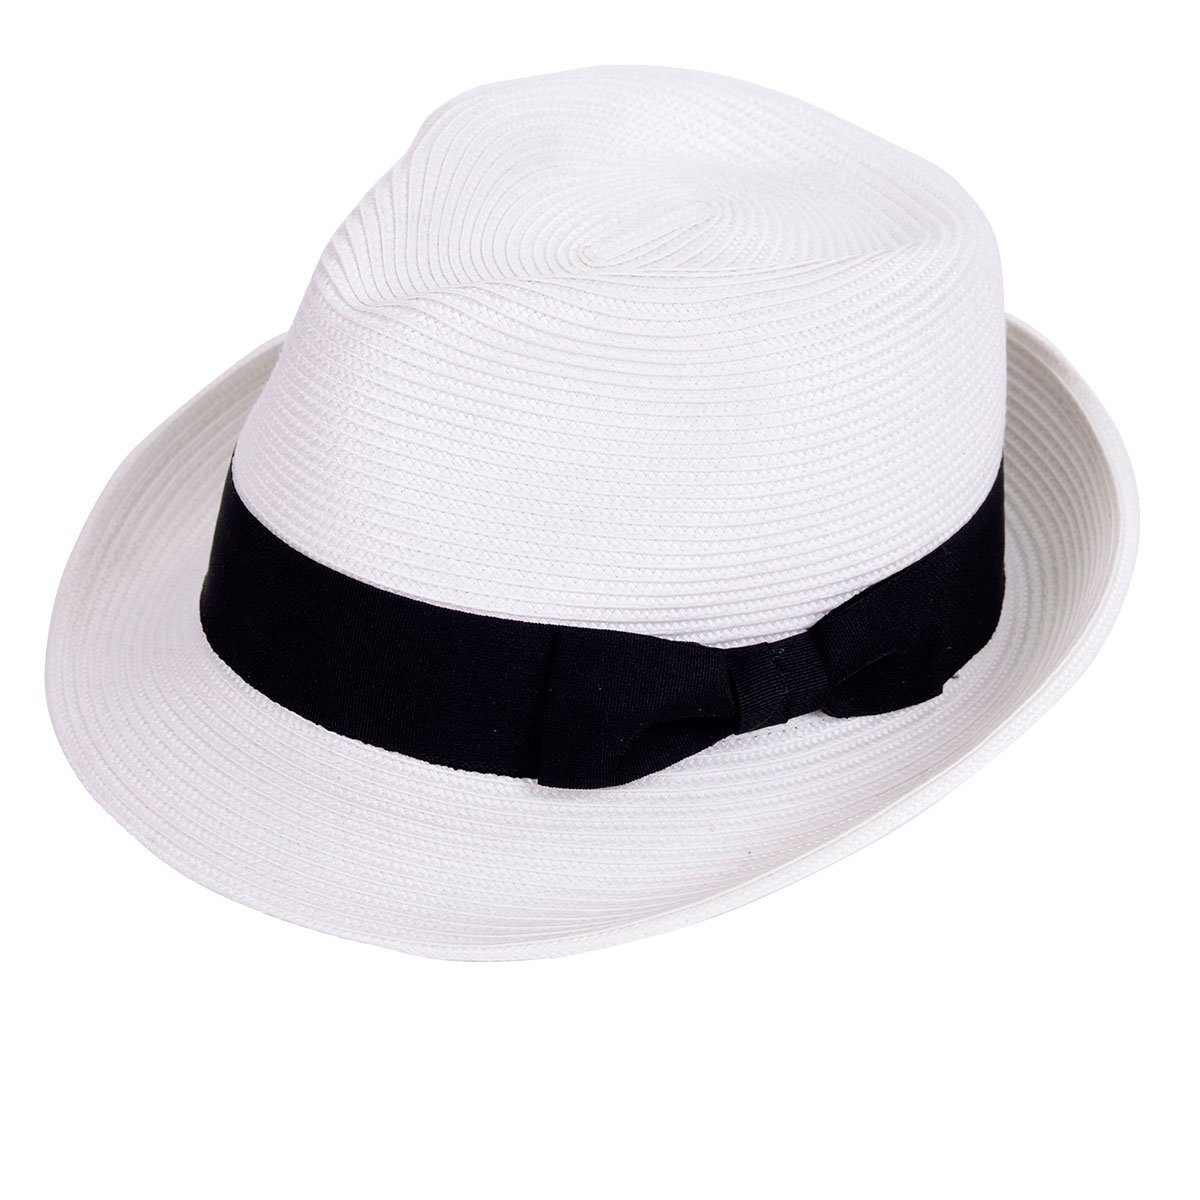 715447127d0 Straw Fedora Hat Sun Trilby Unisex Summer Beach Hats Fashion Panama with  Short Brim for Men and Women(B-White) at Amazon Women s Clothing store